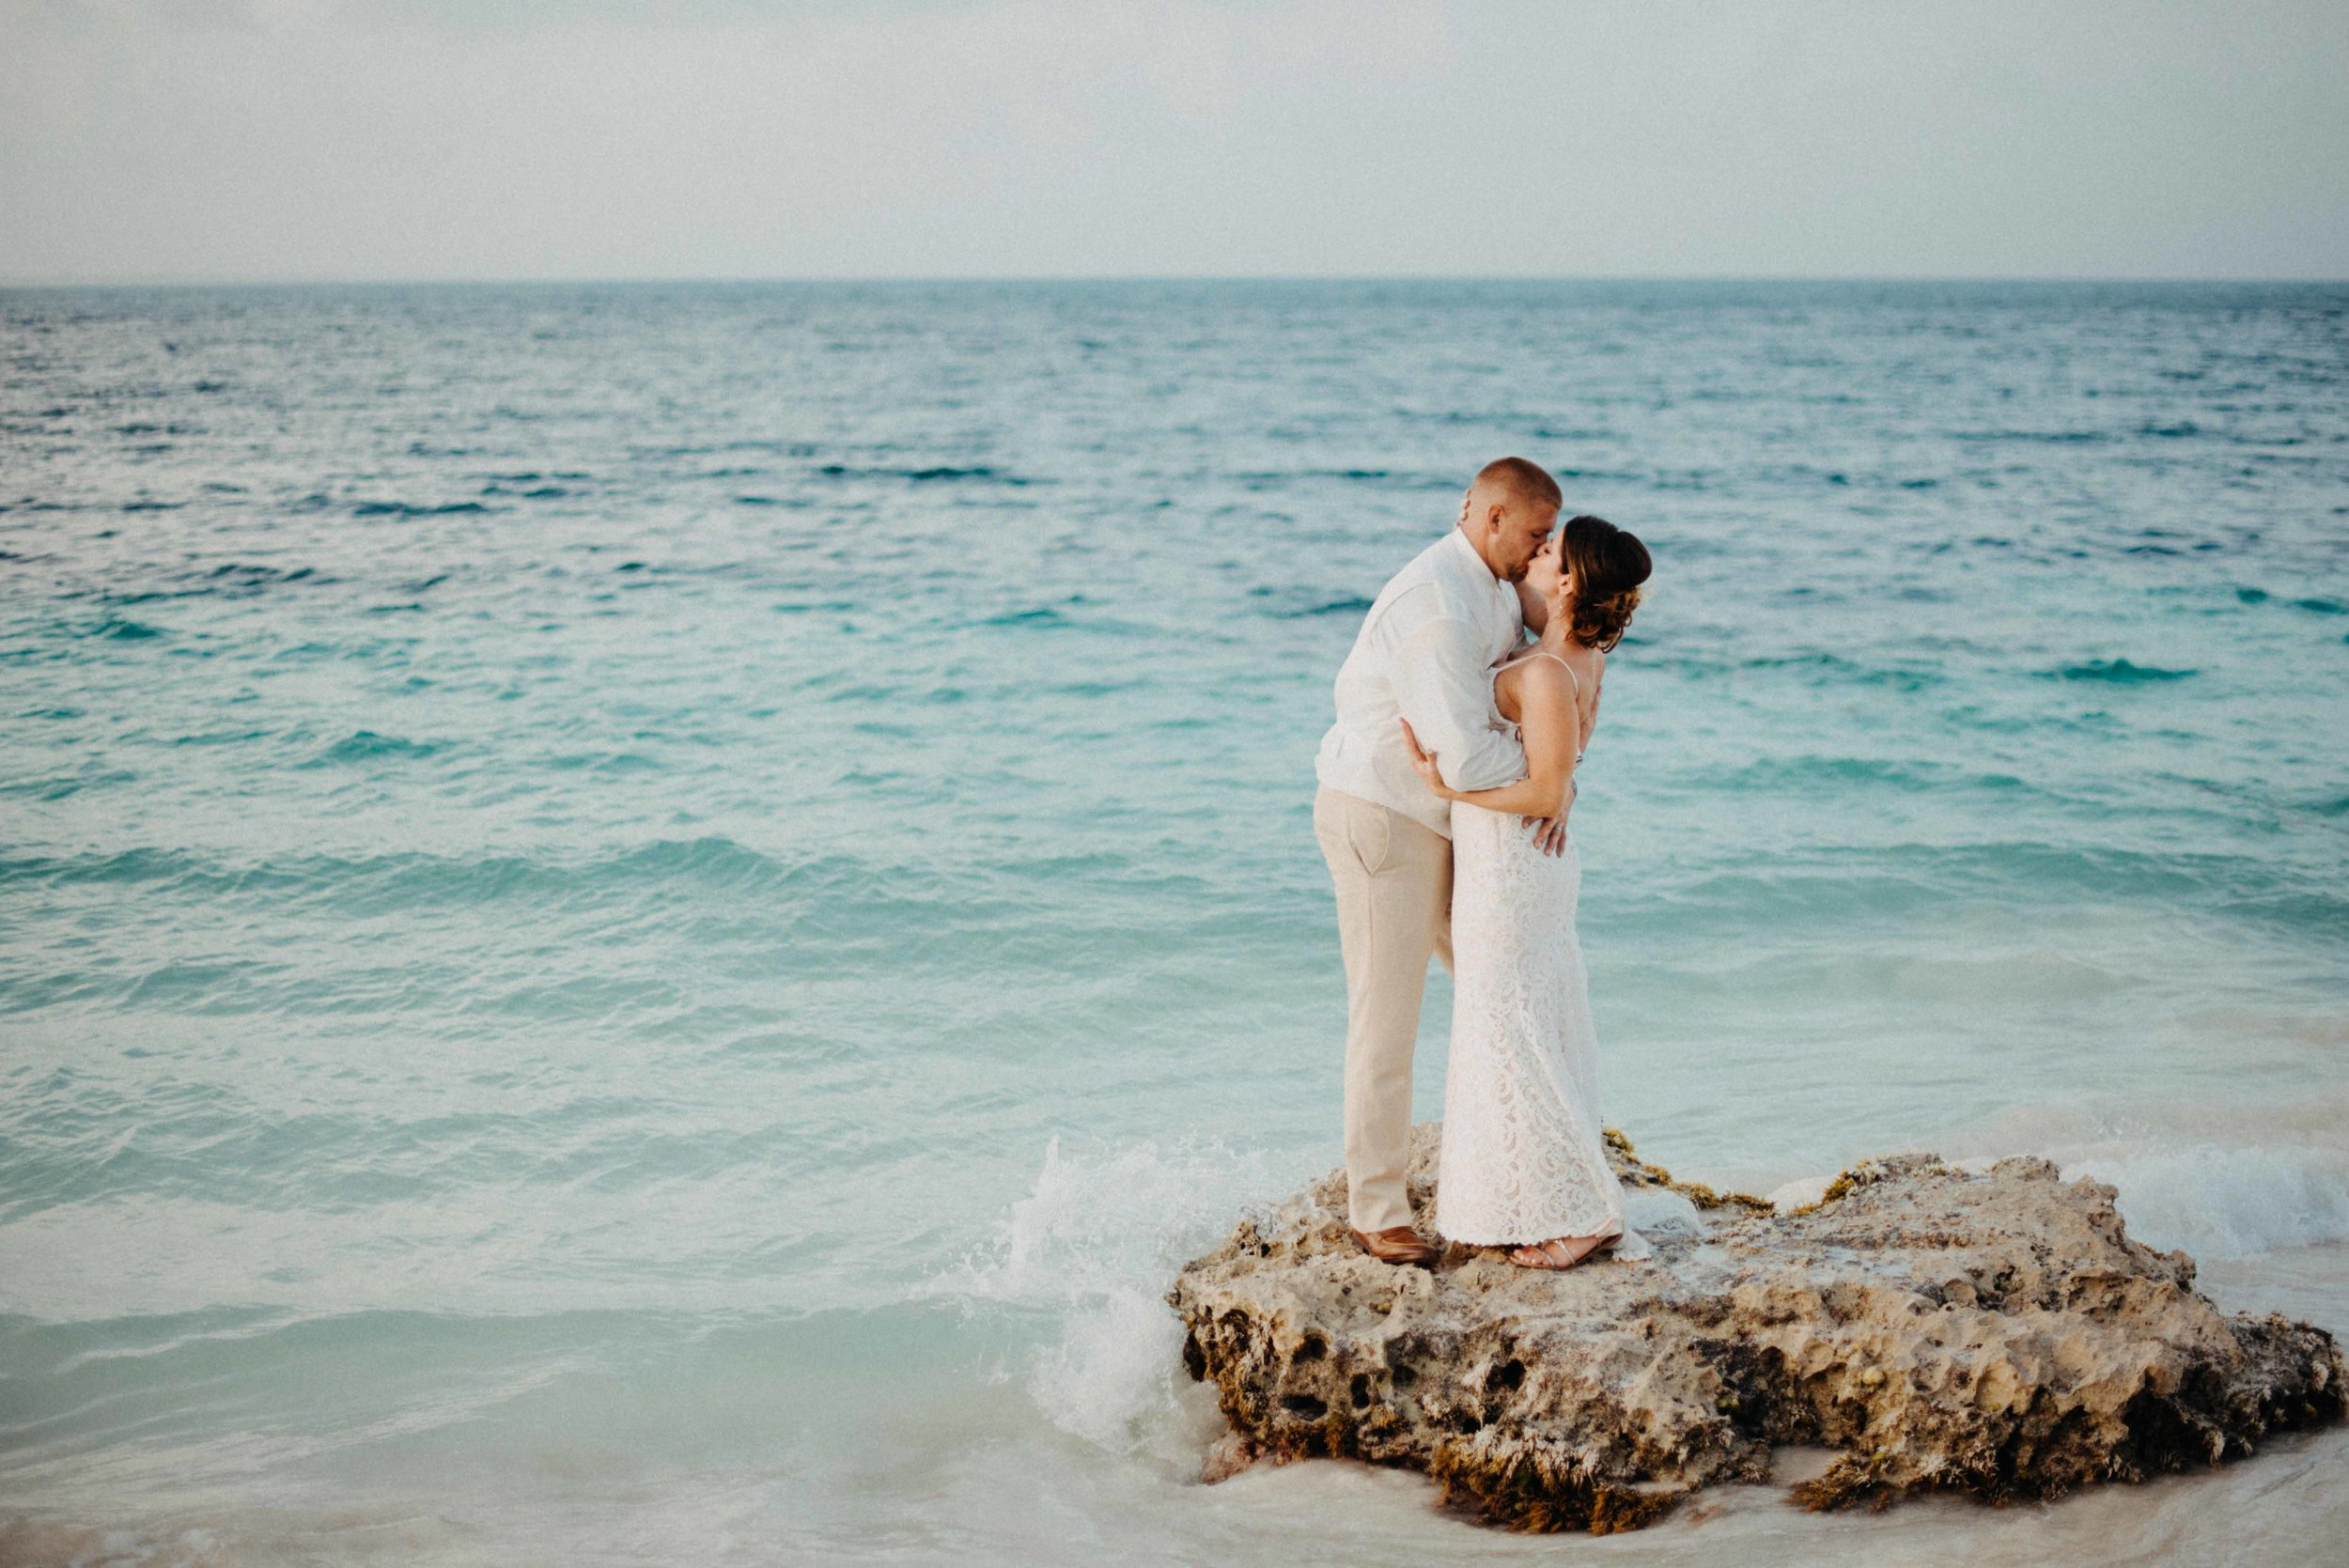 Beach-Wedding-Photography-Cancun-Elopement-Destination-Elopement-Photography-Destination-Beach-Wedding-+Costa-Rica-Wedding-Photography-Beach-Wedding-Photos-teresawoodhull-Cancun-Elopement-Beach-Wedding-+Sunset-Beach-Wedding-Fotografia-de-bodas-Nicoya-Peninsula-Elopement-Photographer-Santa-Teresa-Elopement-Photographer-Adventure-elopement-photographer-Santa-Teresa-Wedding-Photographer-Adventure-Wedding-Boda-playa-santa-teresa-Adventure-Wedding-Photography-Adventure-Wedding-Photographer-Beach-Elopement-Beach-Elopement-Photos-maddie-mae-Beach-Elopement-Photographer-Destination-Elopement-Photographer-Sunset-Beach-Elopement-Mexico-wedding-photographer-cabo-wedding-photographer-mexico-wedding-mexico-destination-wedding-cancun-destination-wedding-cancun-elopement-photographer-playa-del-carmen-wedding-playa-del-carmen-destination-wedding-photographer-playa-del-carmen-wedding-photography-Nicoya-Peninsula-Wedding-Photography-Nicoya-Peninsula-Wedding-Photographer-Nicoya-Peninsula-Elopement-Photography-bride-groom-standing-on-rock-in-ocean-bride-groom-ocean-wedding